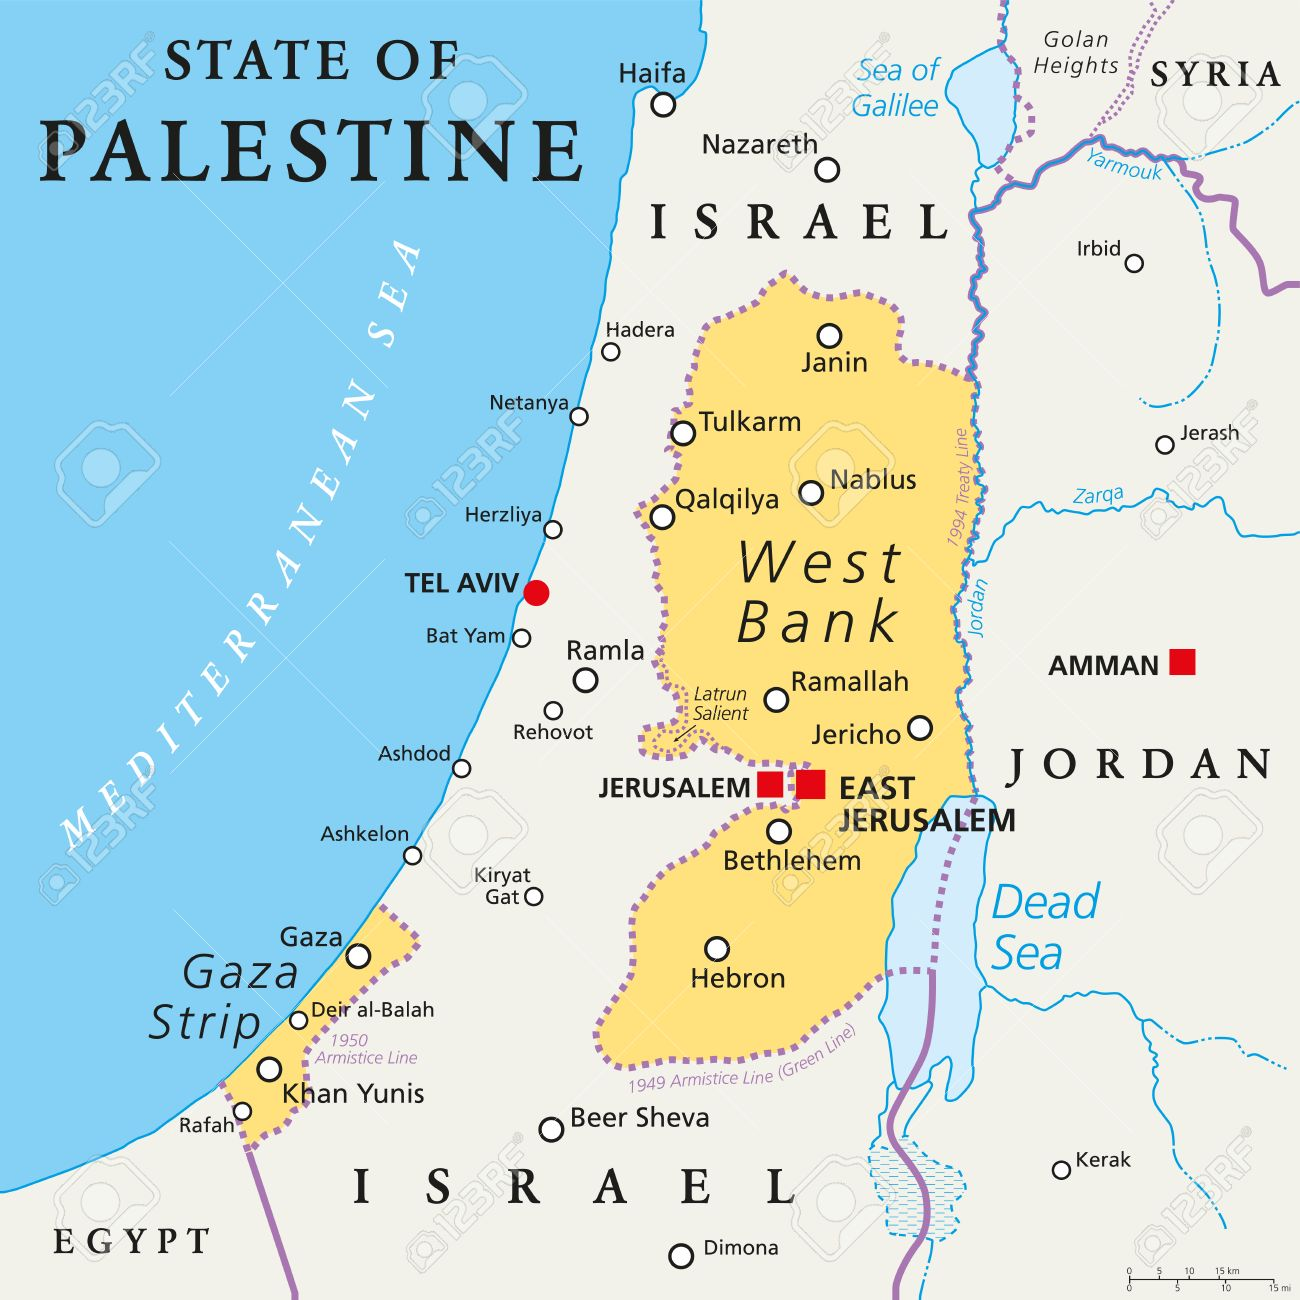 Israel and the West Bank and Gaza Strip